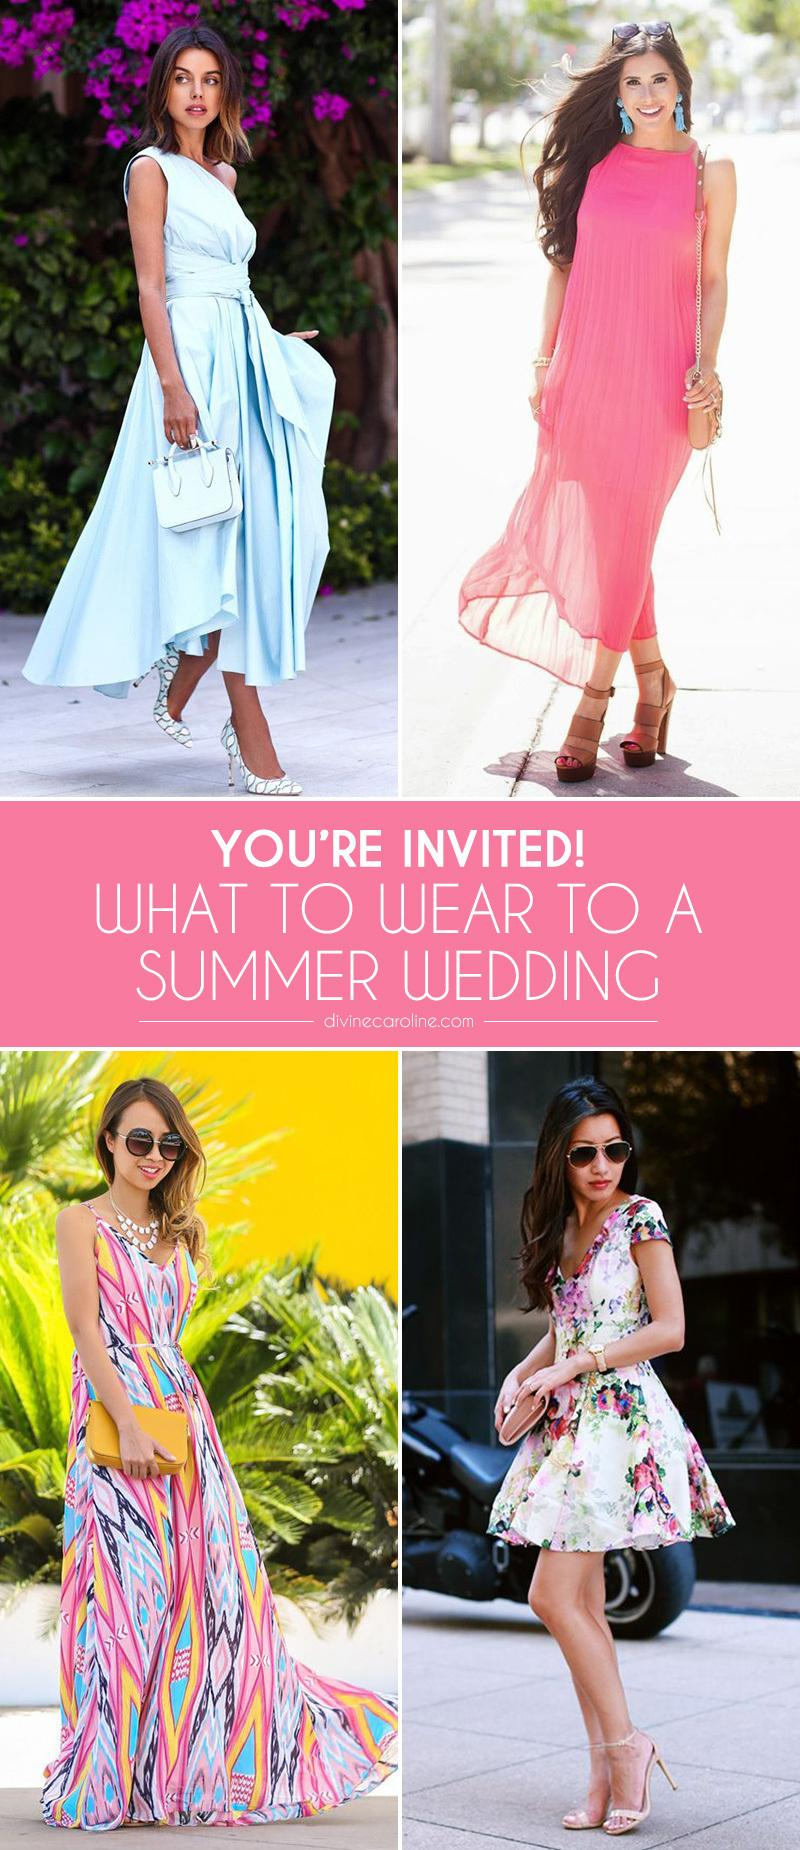 You're Invited! What to Wear to a Summer Wedding | more.com